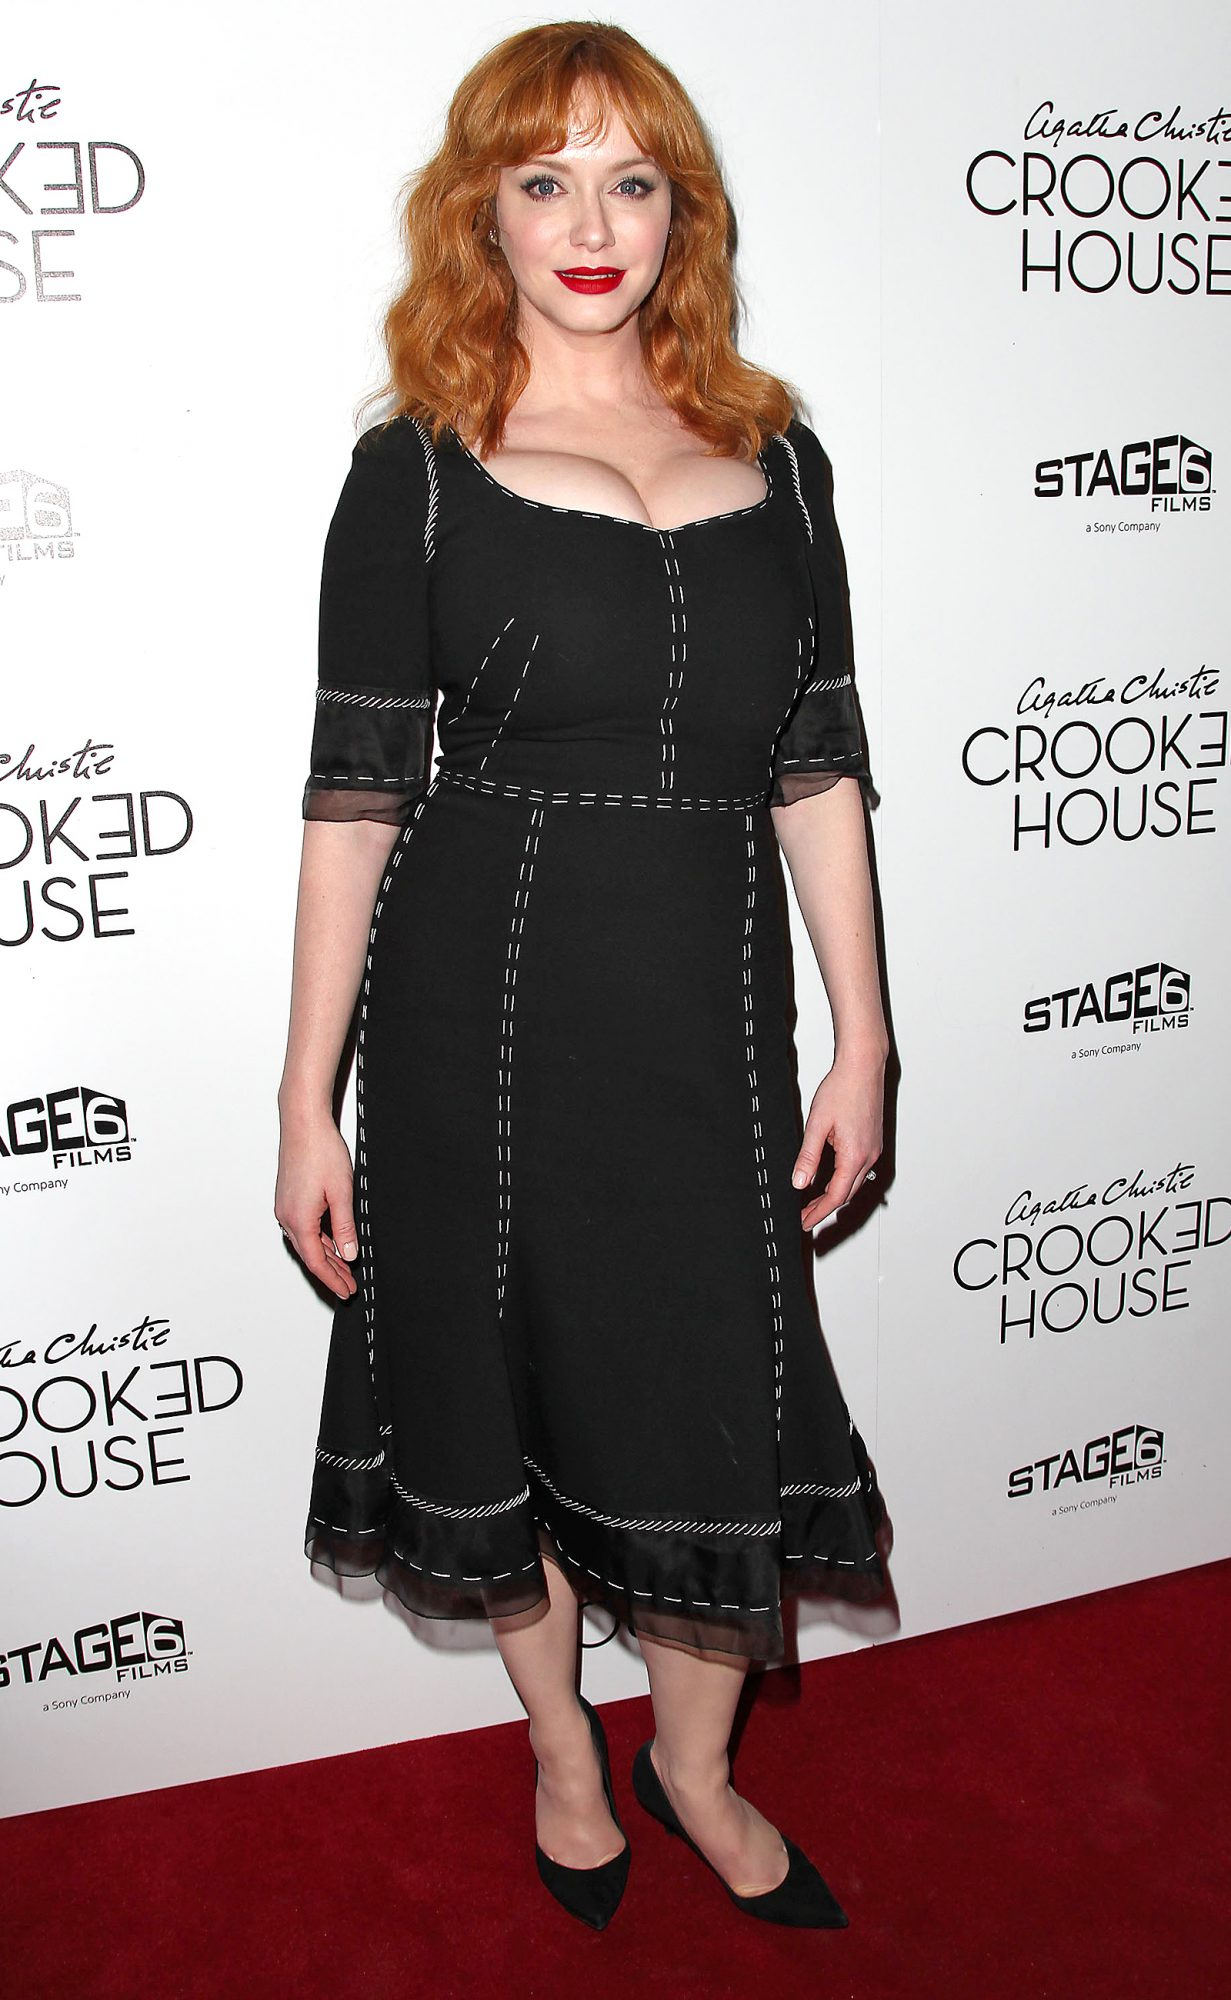 New York Premiere of 'CROOKED HOUSE', USA - 13 Dec 2017